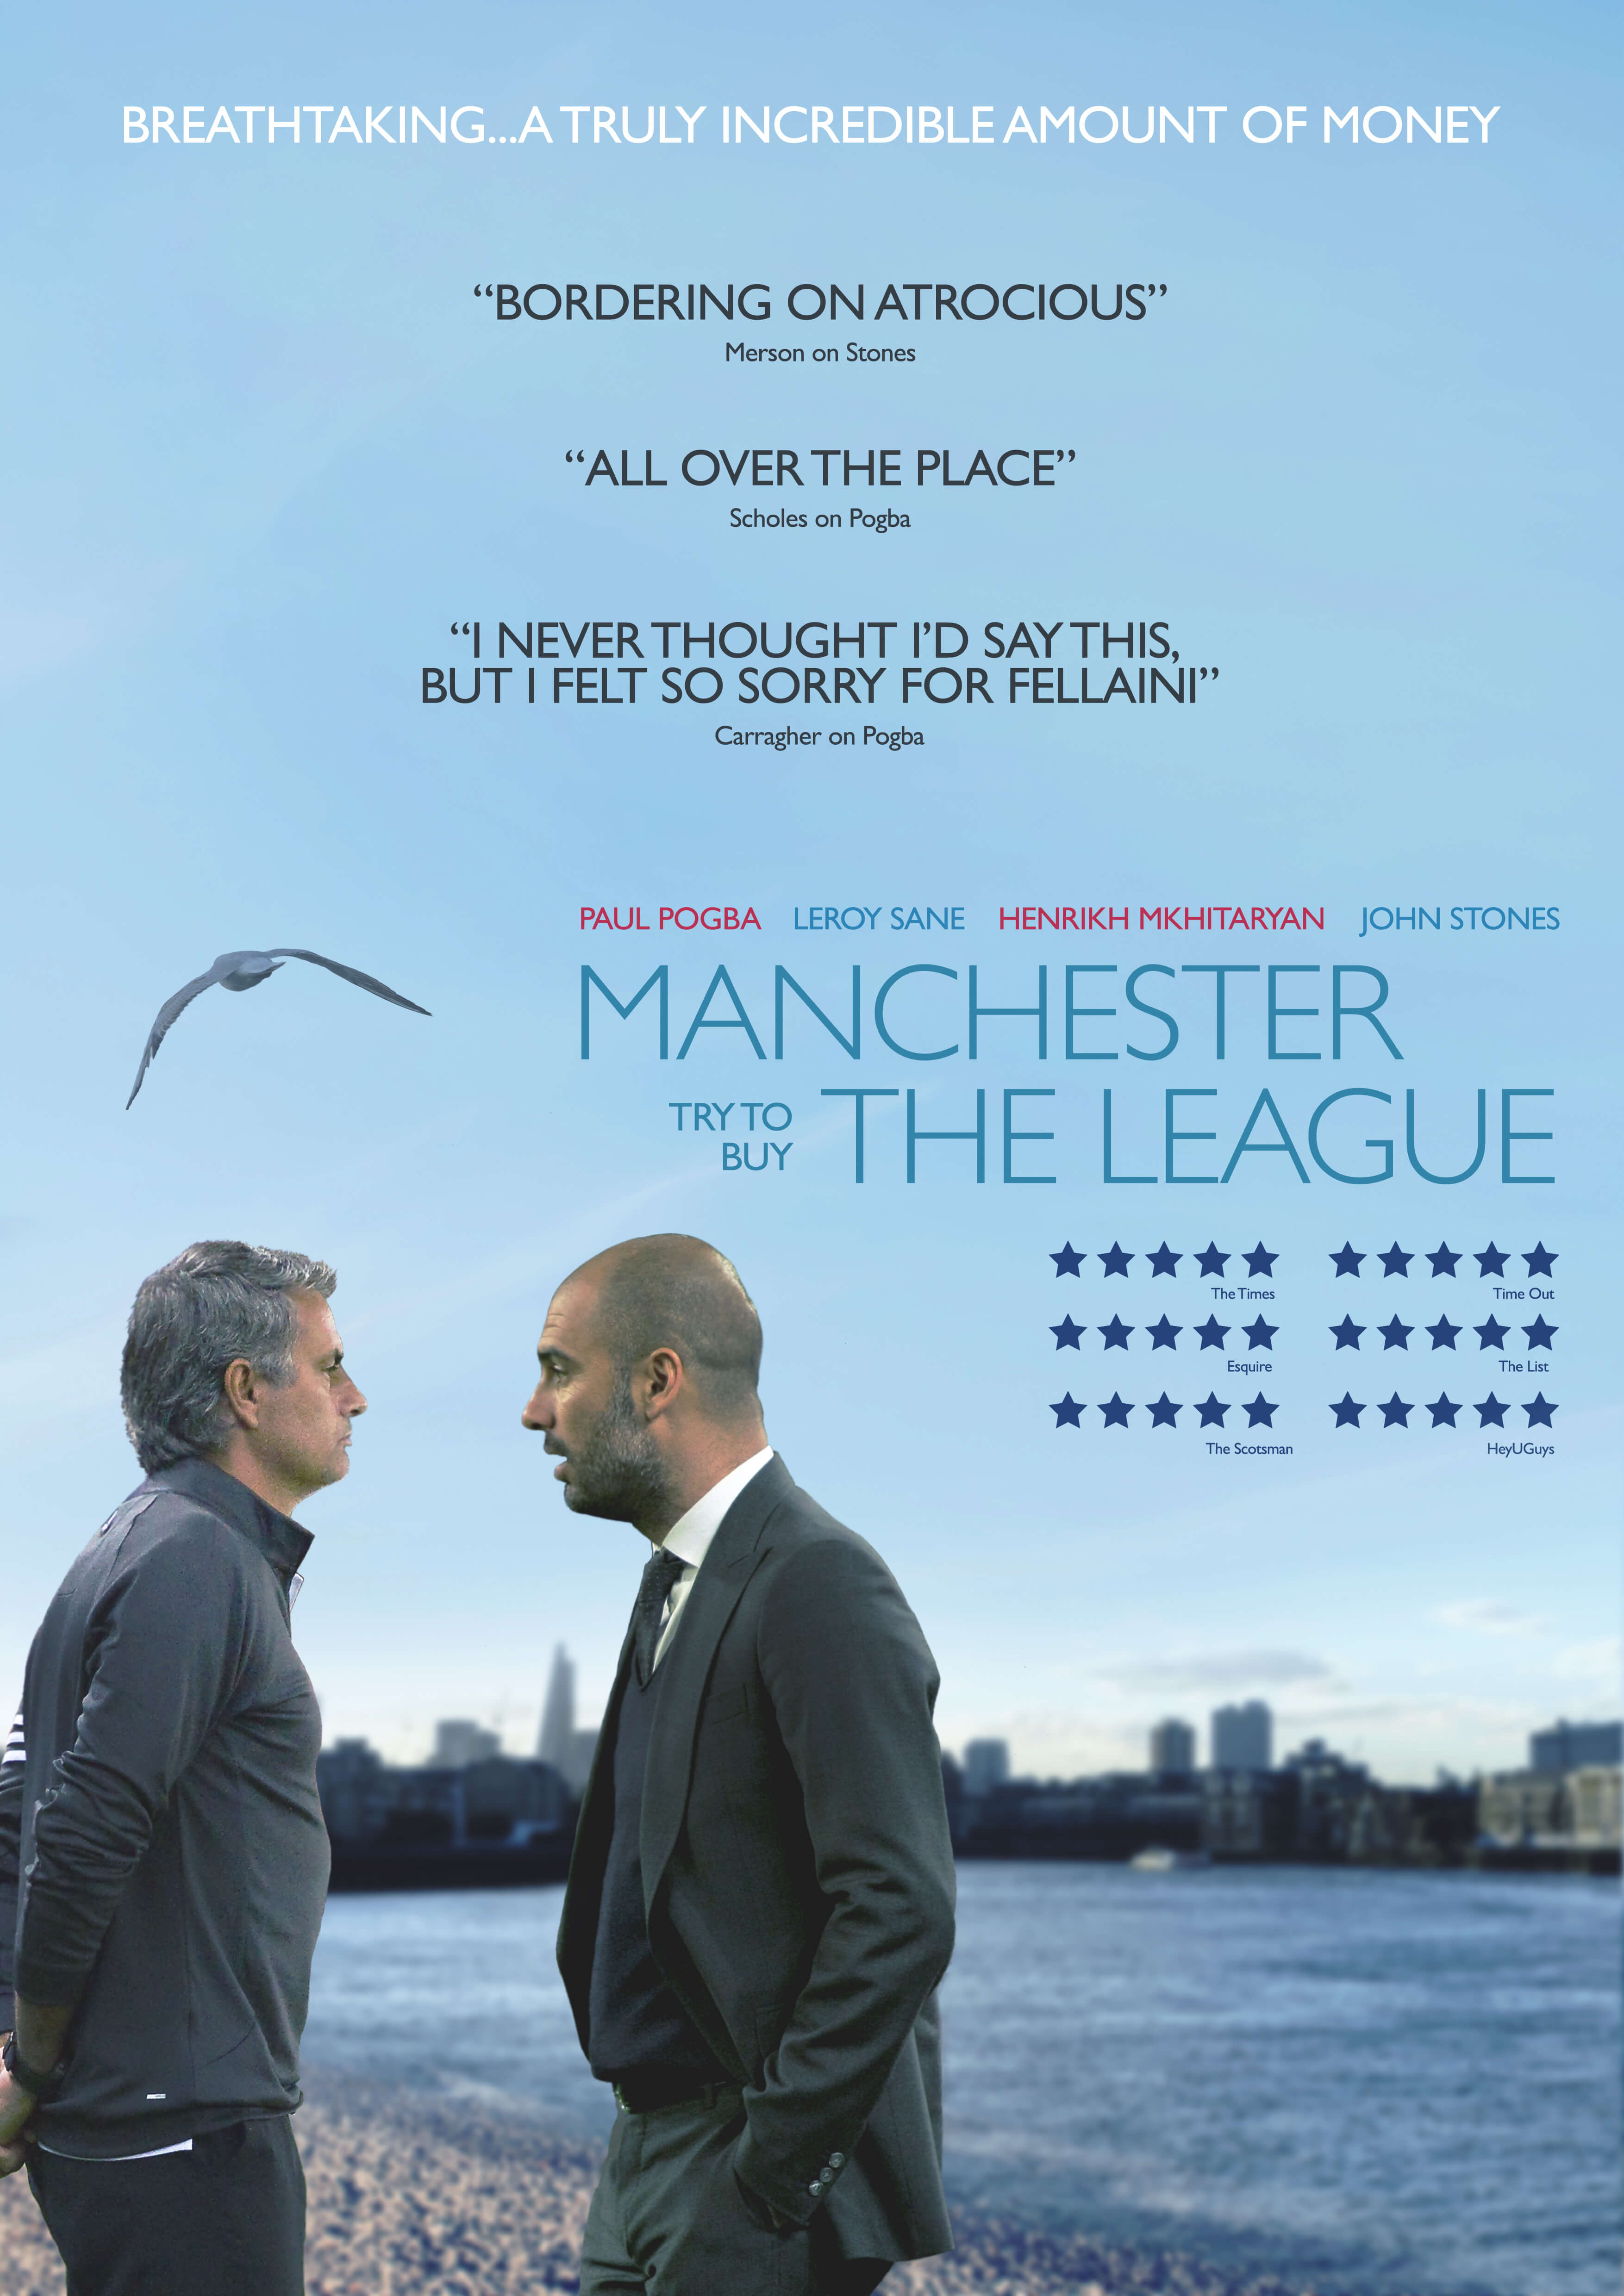 Enhanced Bets Premier League Oscar Nominations - Manchester Try To Buy The League